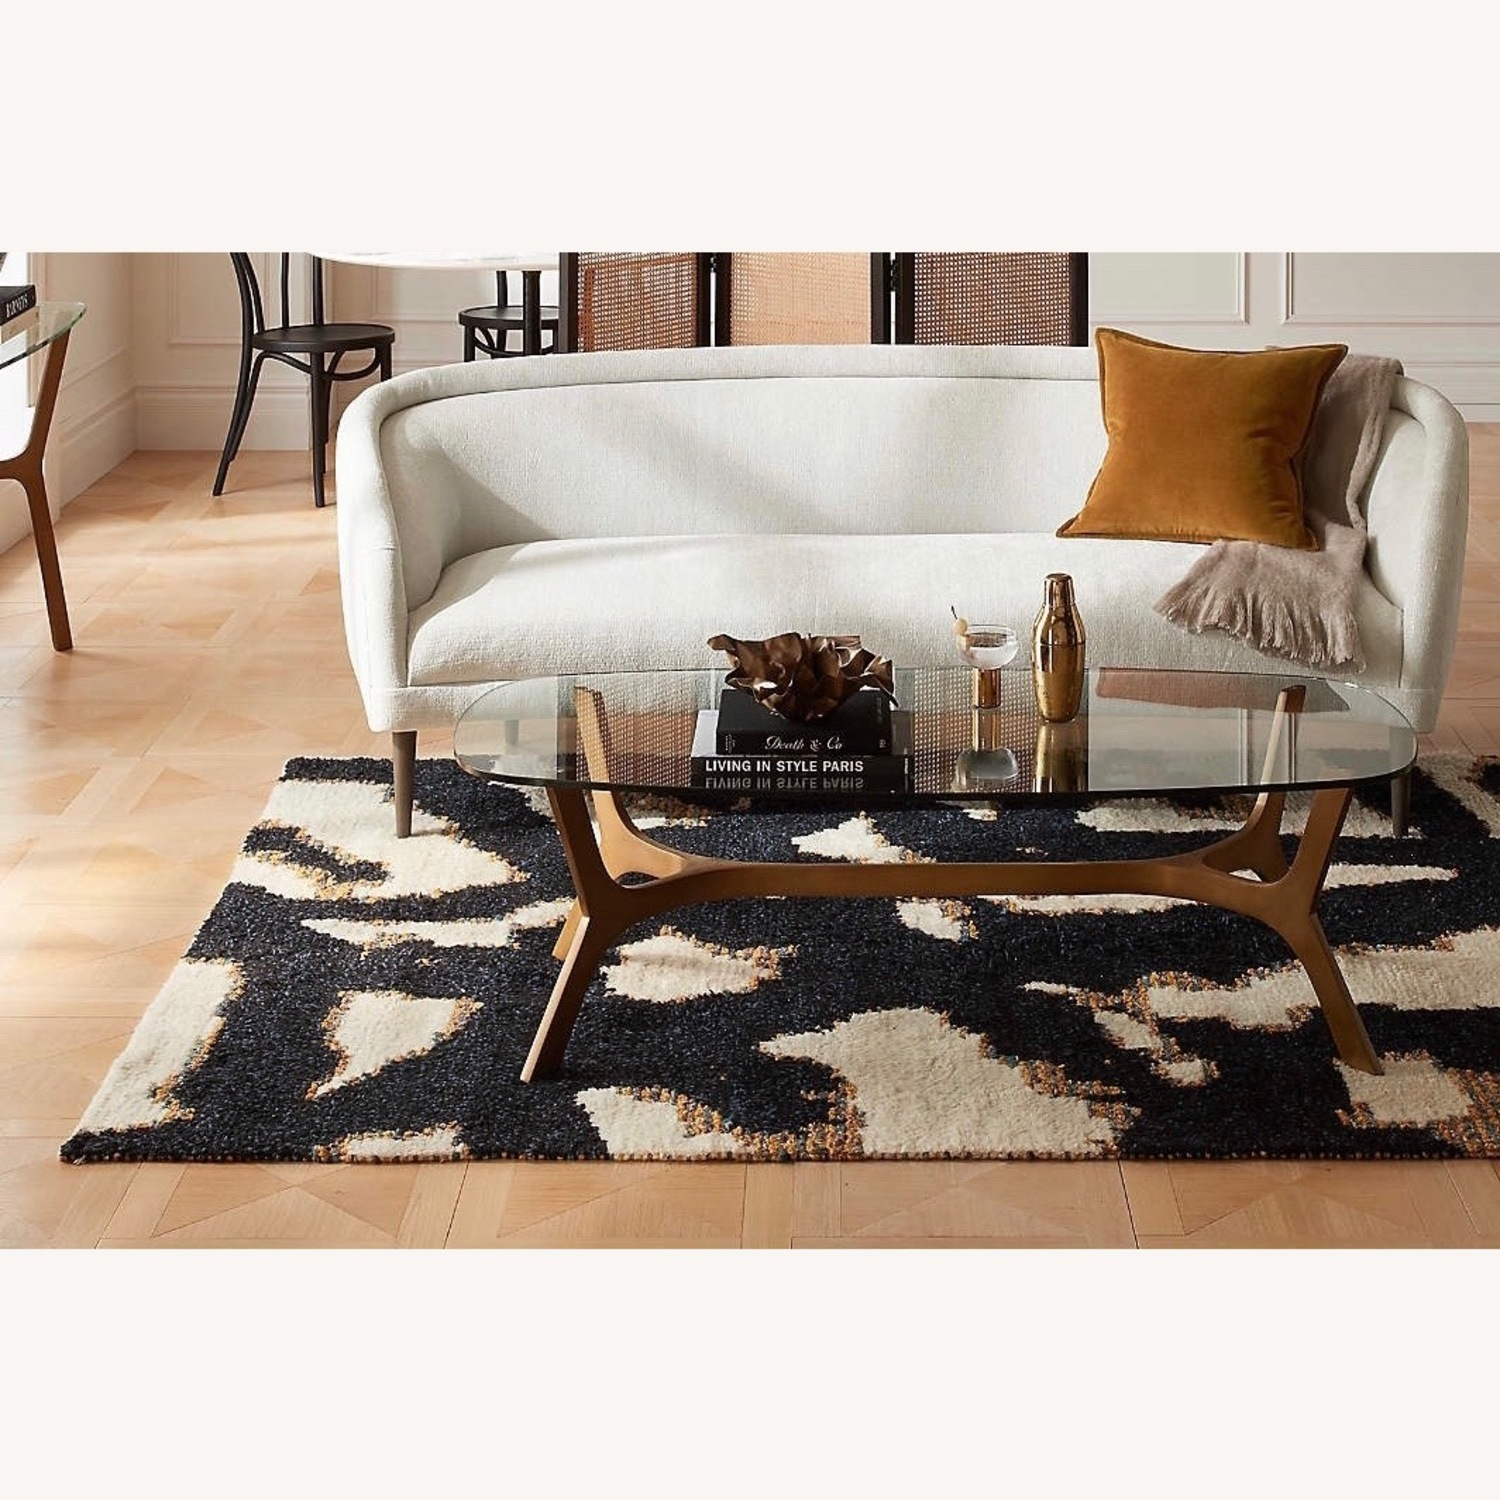 Crate and Barrel Coffee Table - image-4